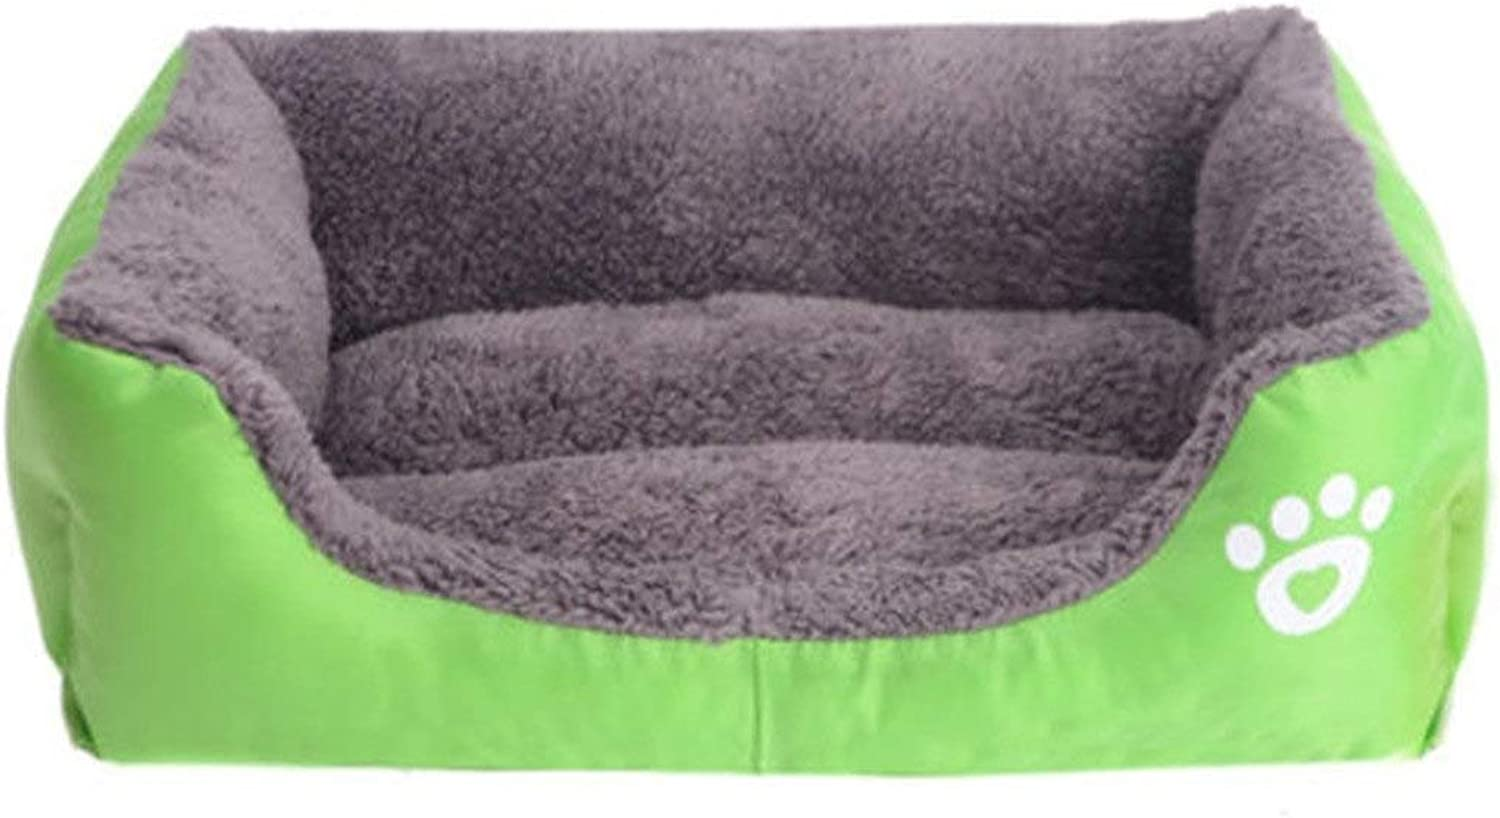 MUMUCW Dog Bed Washable, Cat Bed Pet Bed Small Pet Bed Mattress Pillow Cushion Soft Warm Prime Cotton Bed with Cute Image (color   GREEN, Size   Xl)